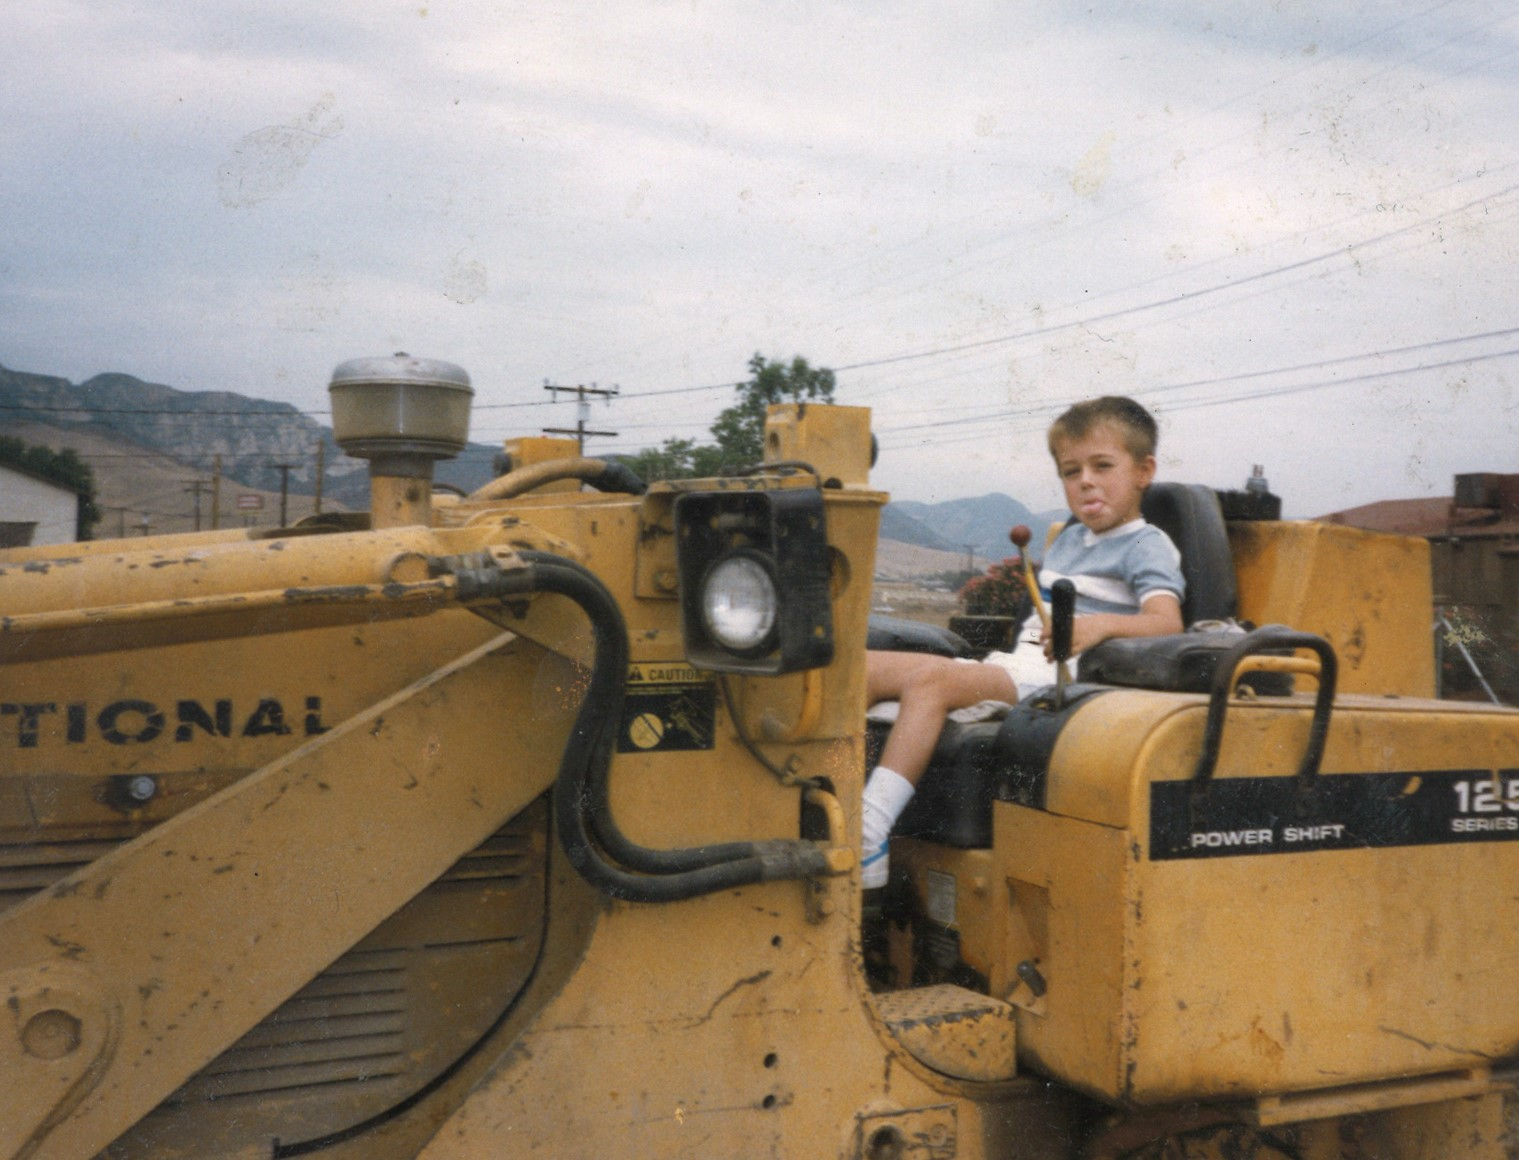 9. Chris sitting on backhoe Castaic Apt - sticking his tongue out.jpg